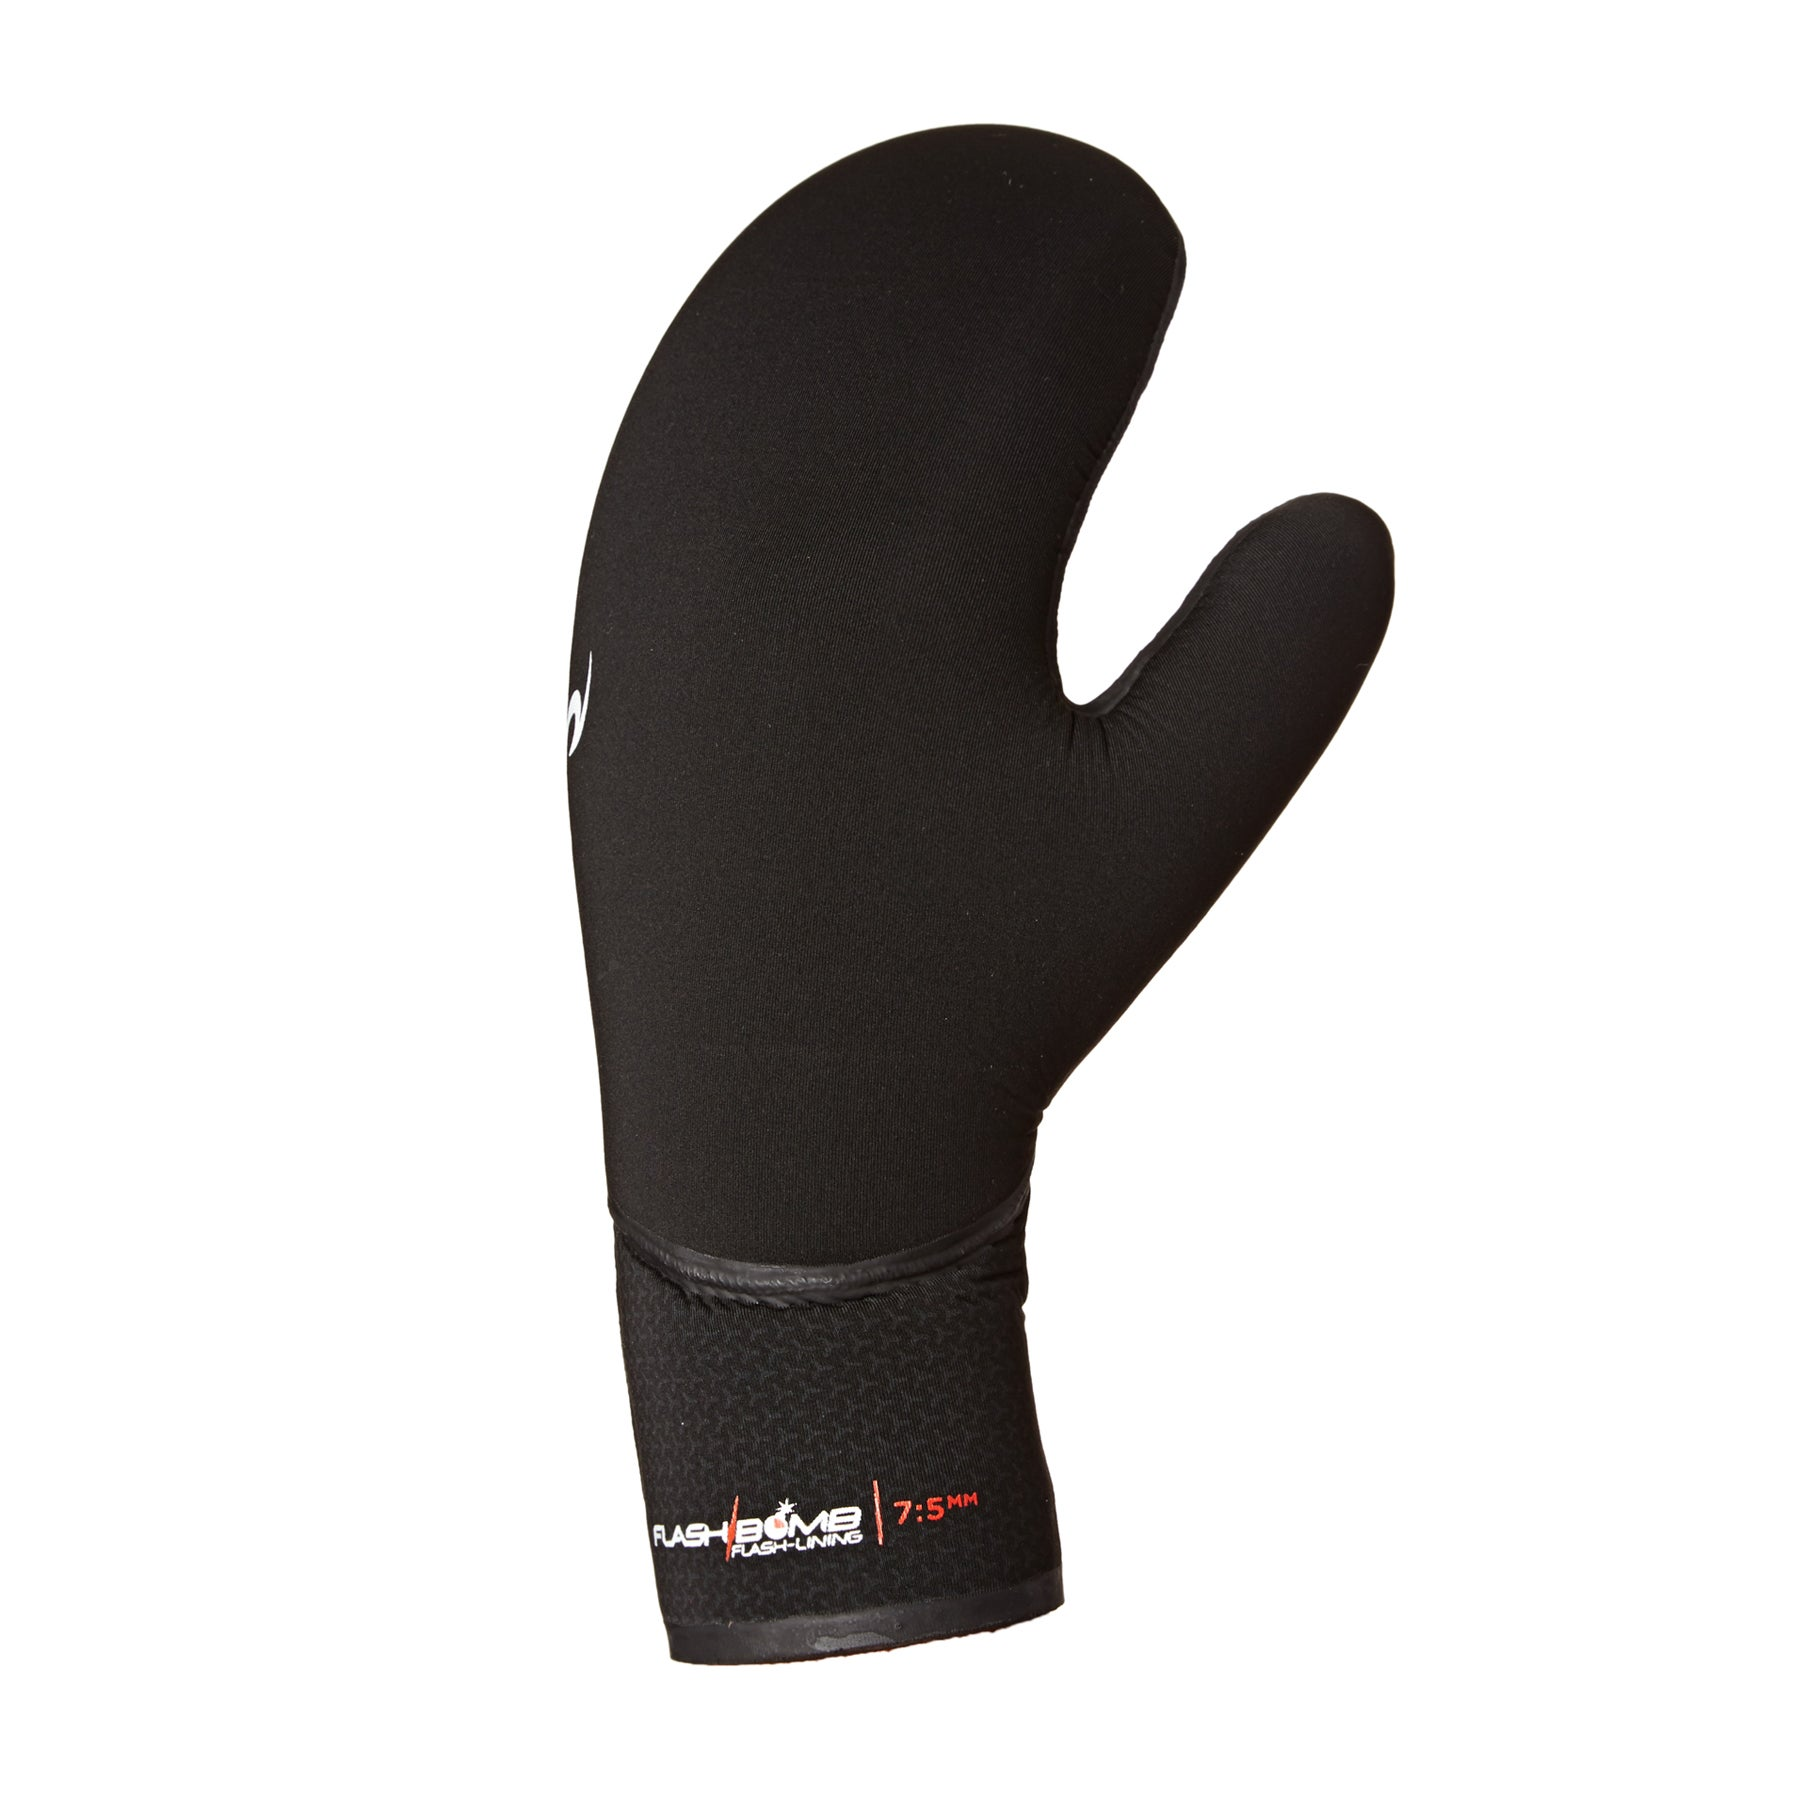 Rip Curl Flashbomb 75mm 2018 Wetsuit Gloves - Black